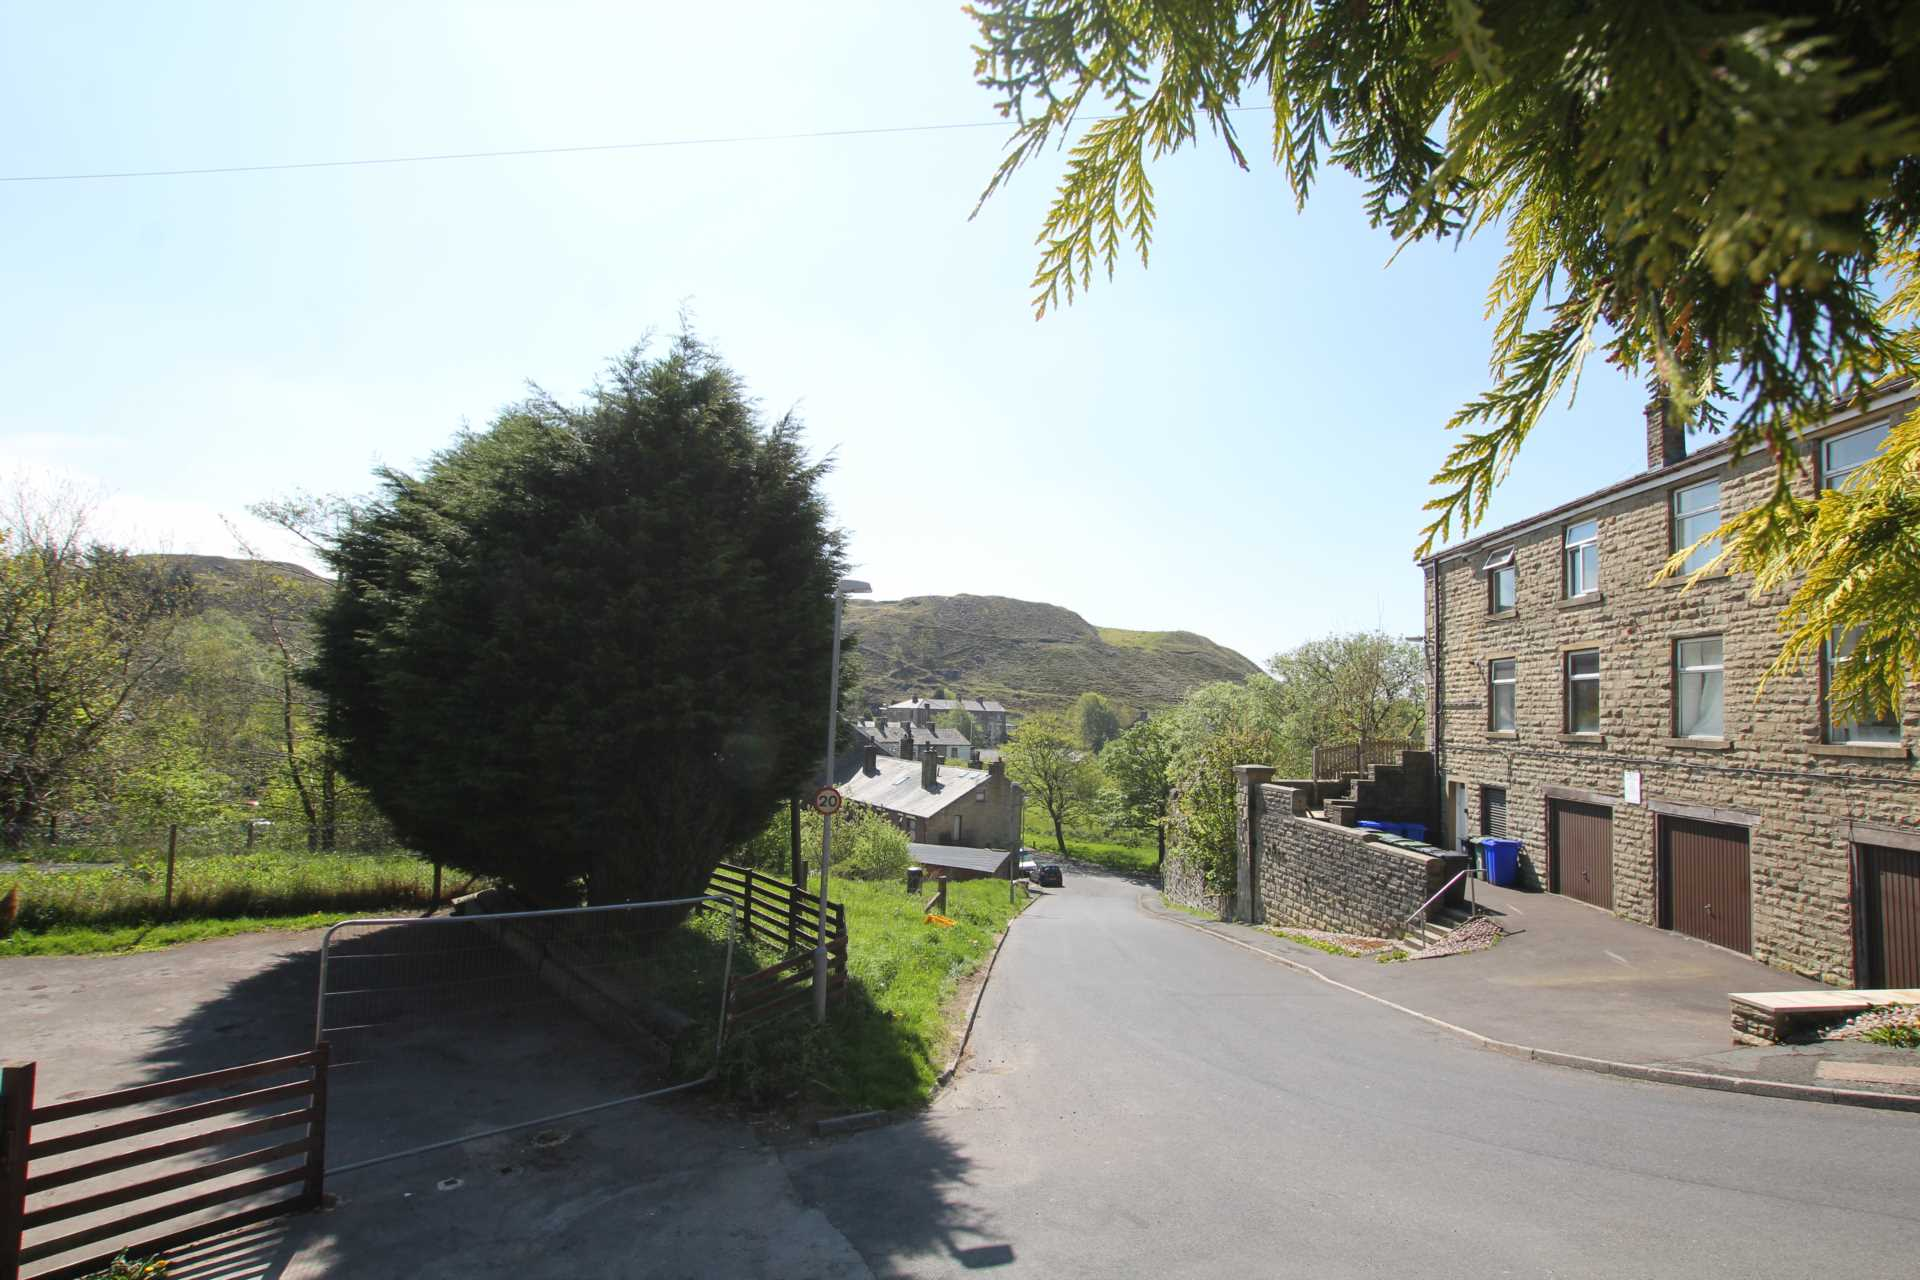 East View, Rochdale, Image 9